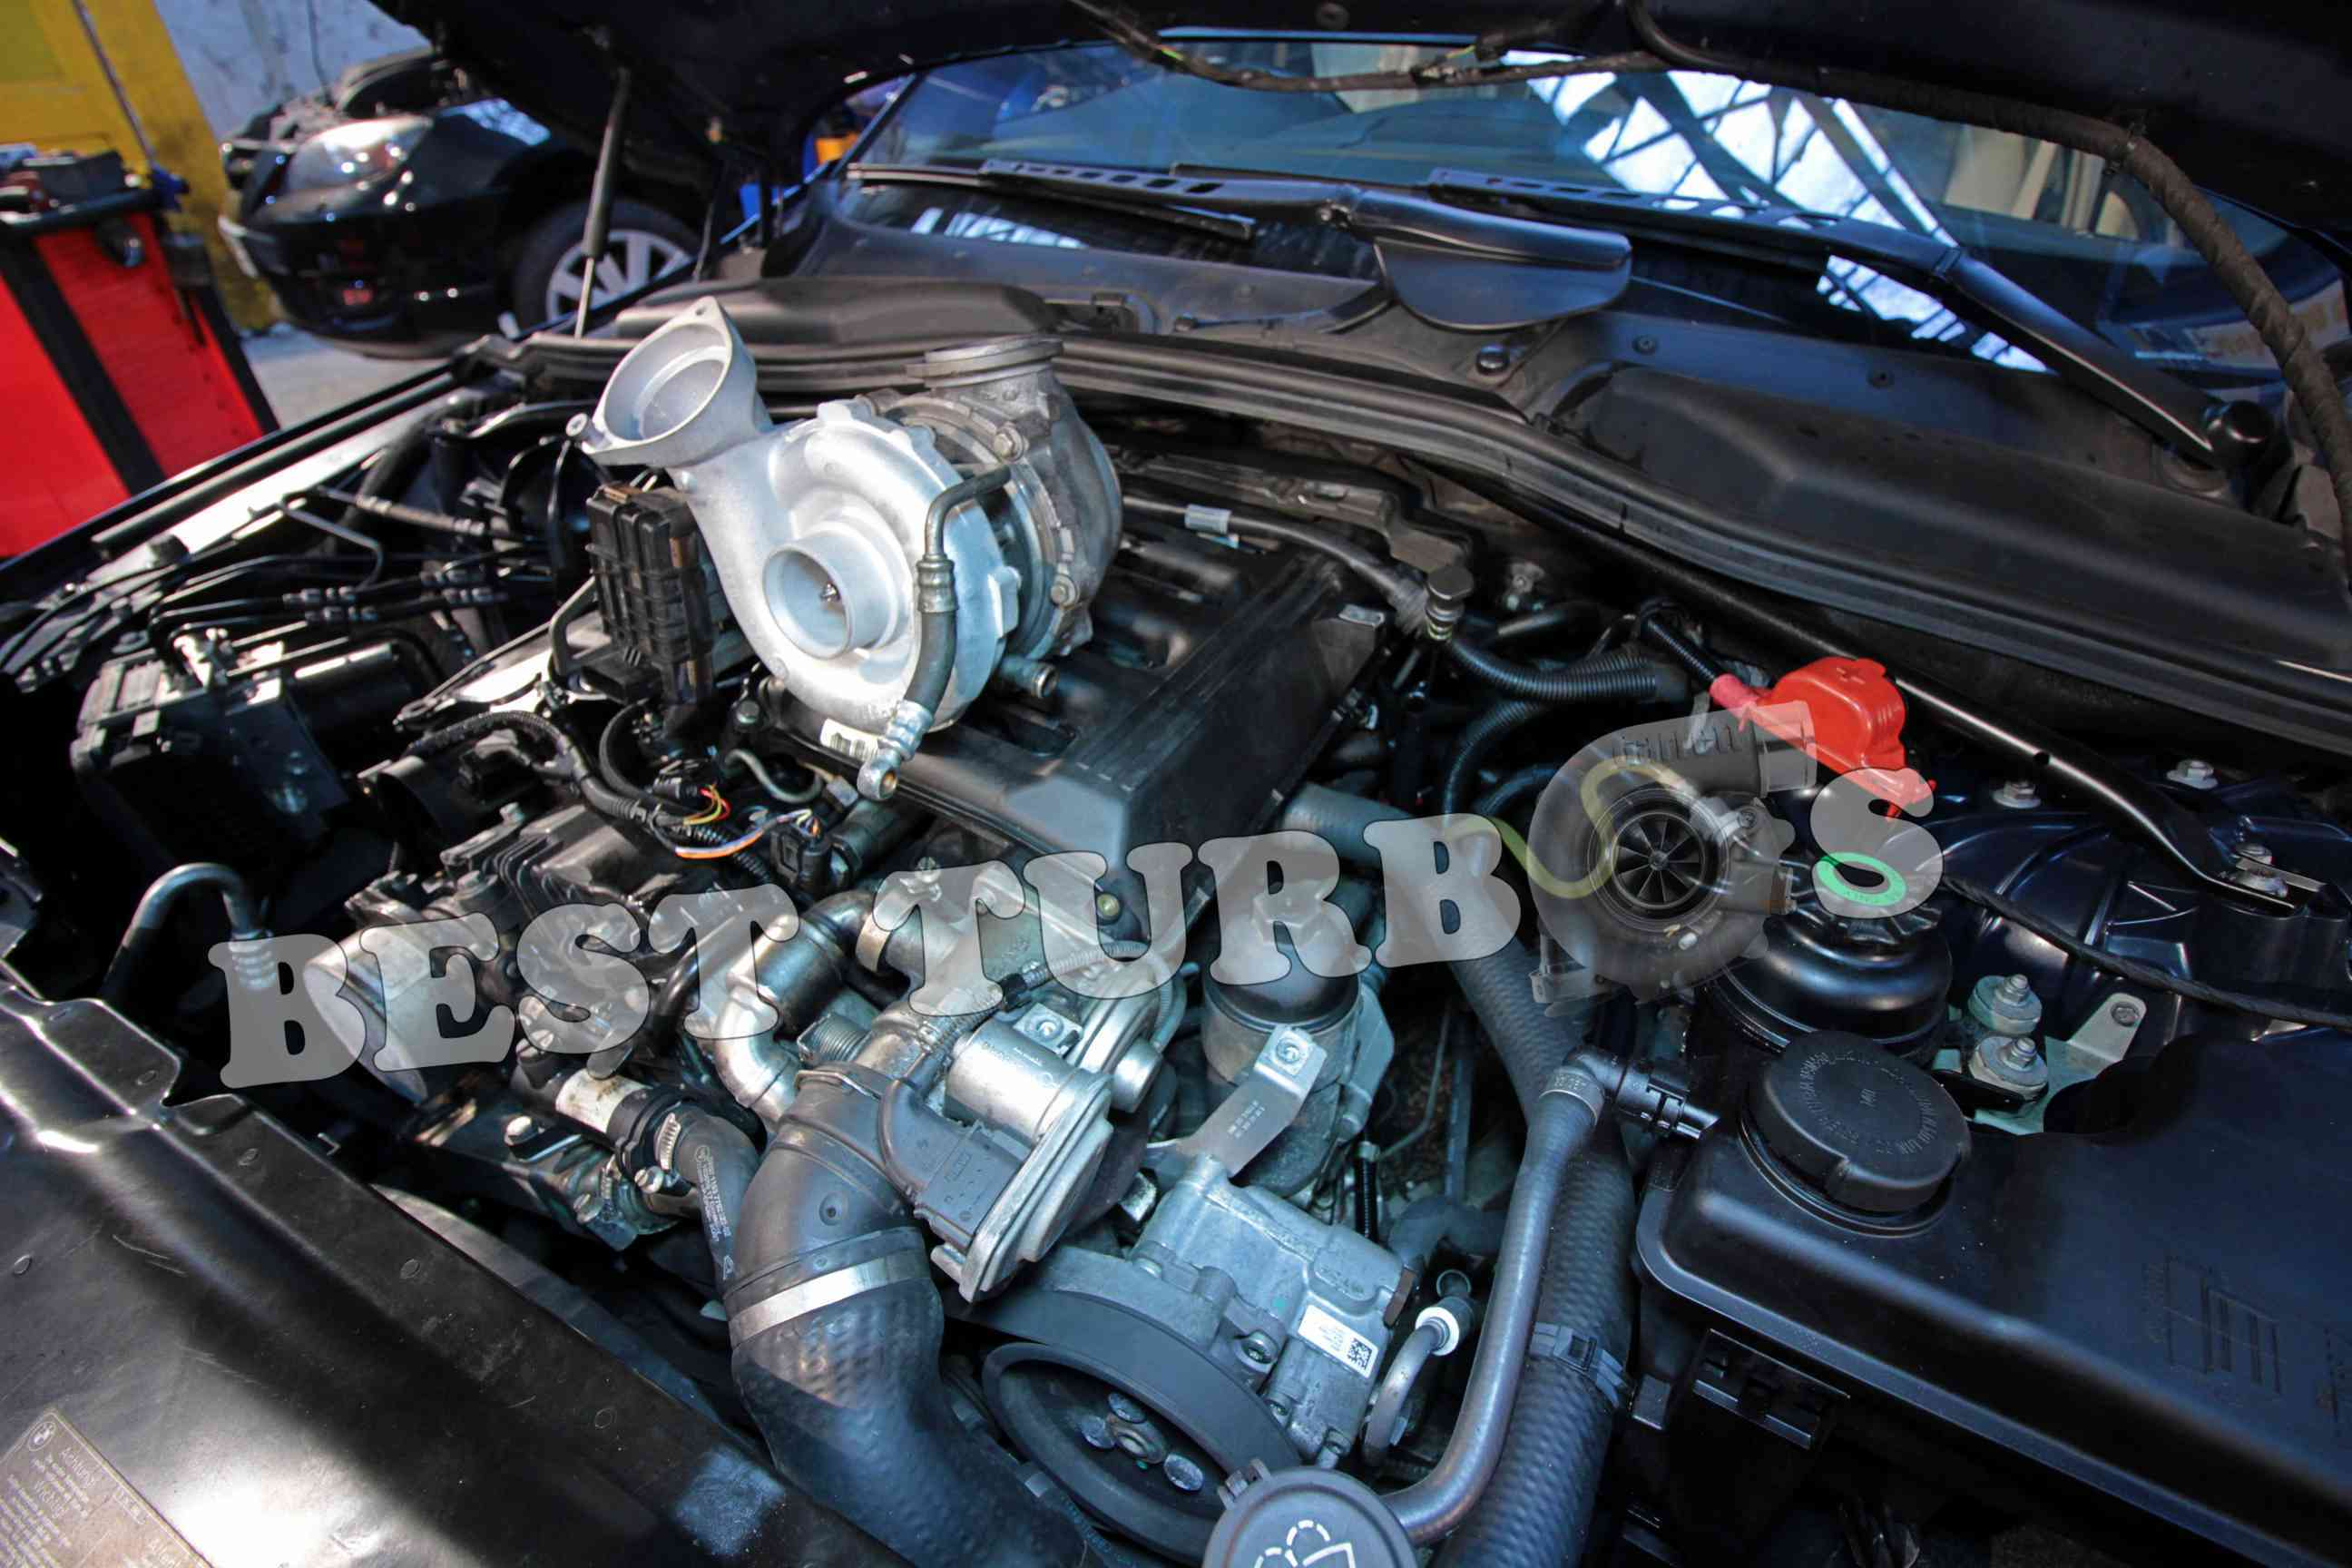 BMW 530d Turbocharger Problem & Fitting Reconditioned Turbo Oldbury